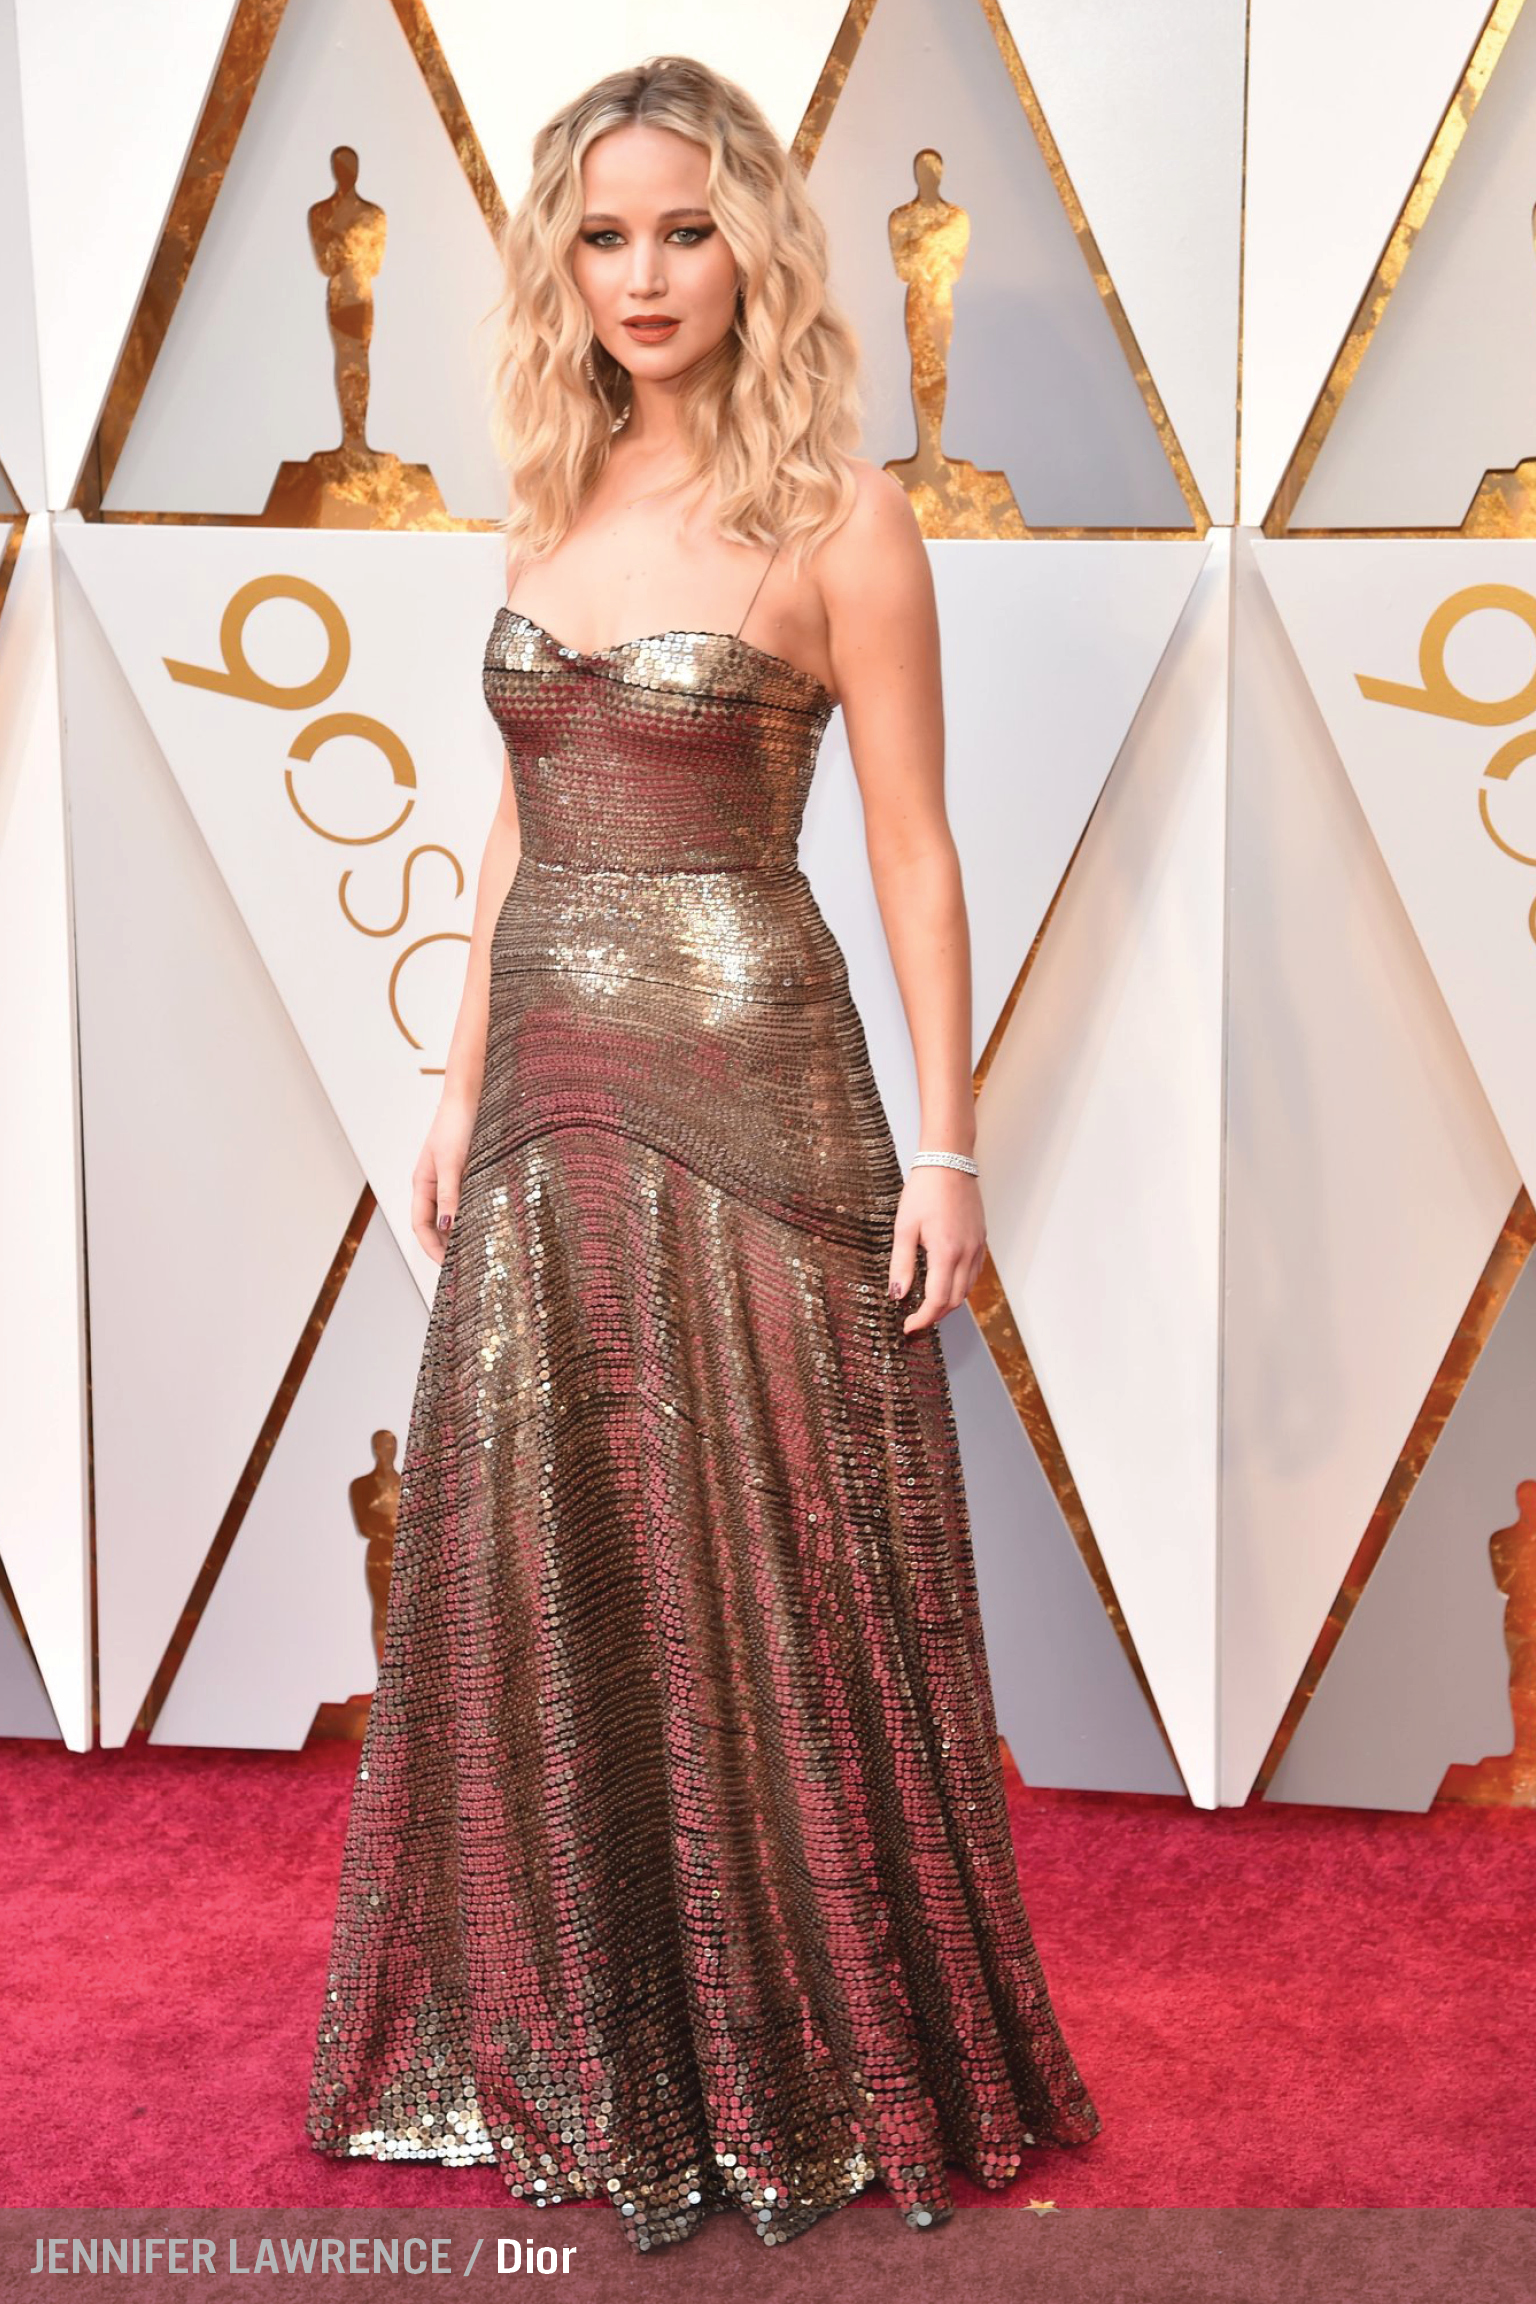 Oscars 2018 Red Carpet Looks Breakdown by Colors - House of June